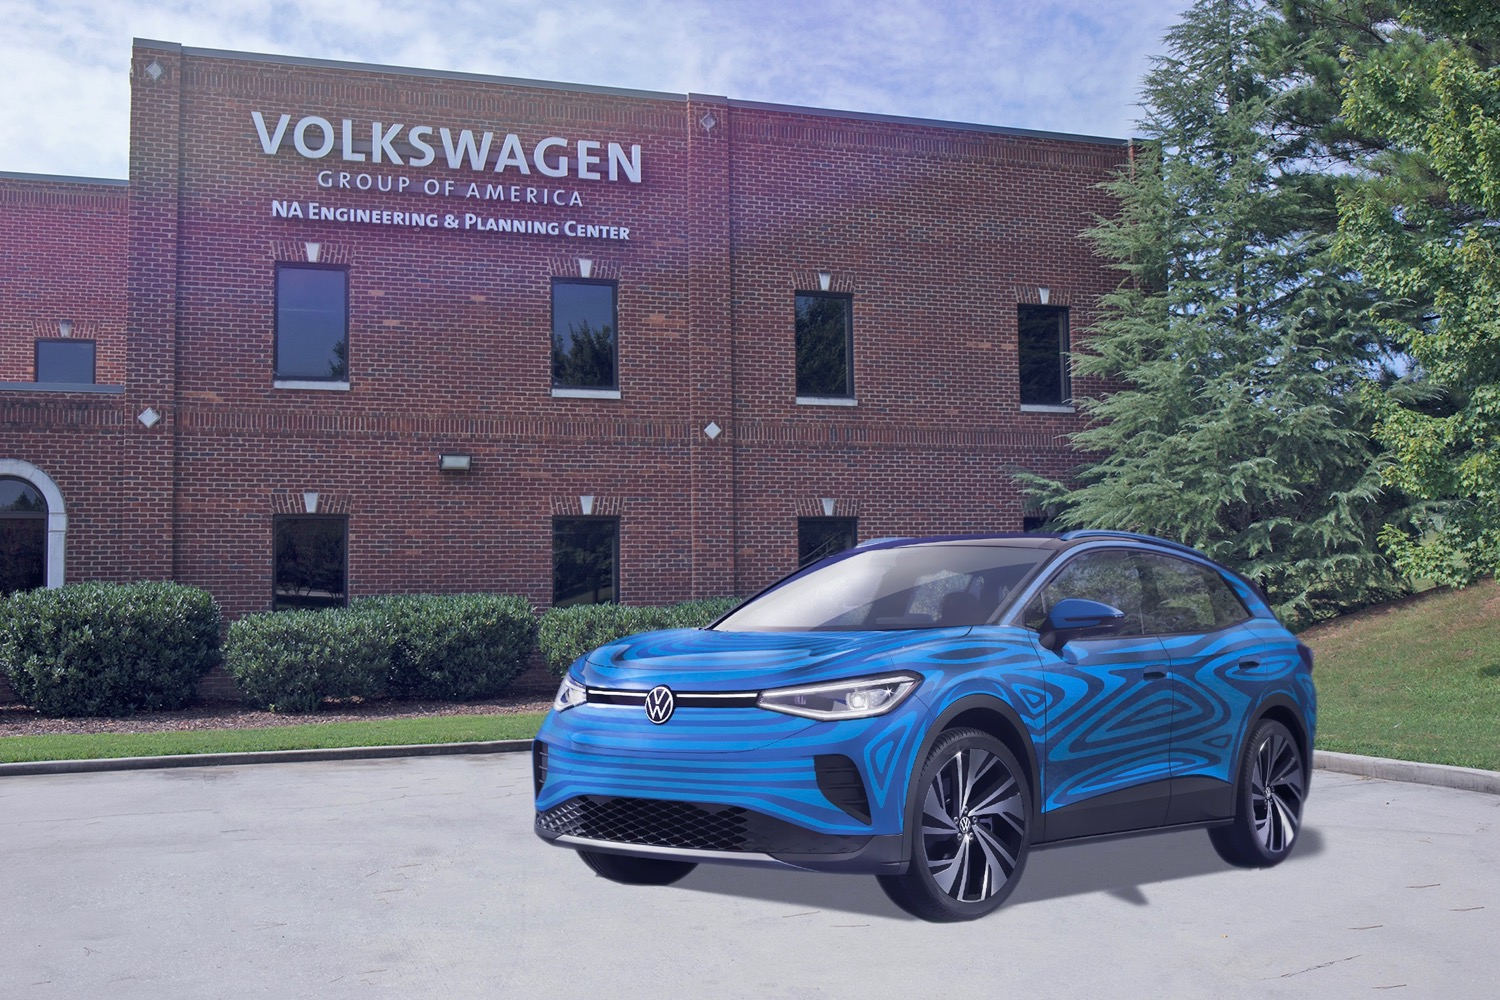 Volkswagen aims to sell 500,000 ID.4 electric crossovers annually by 2025